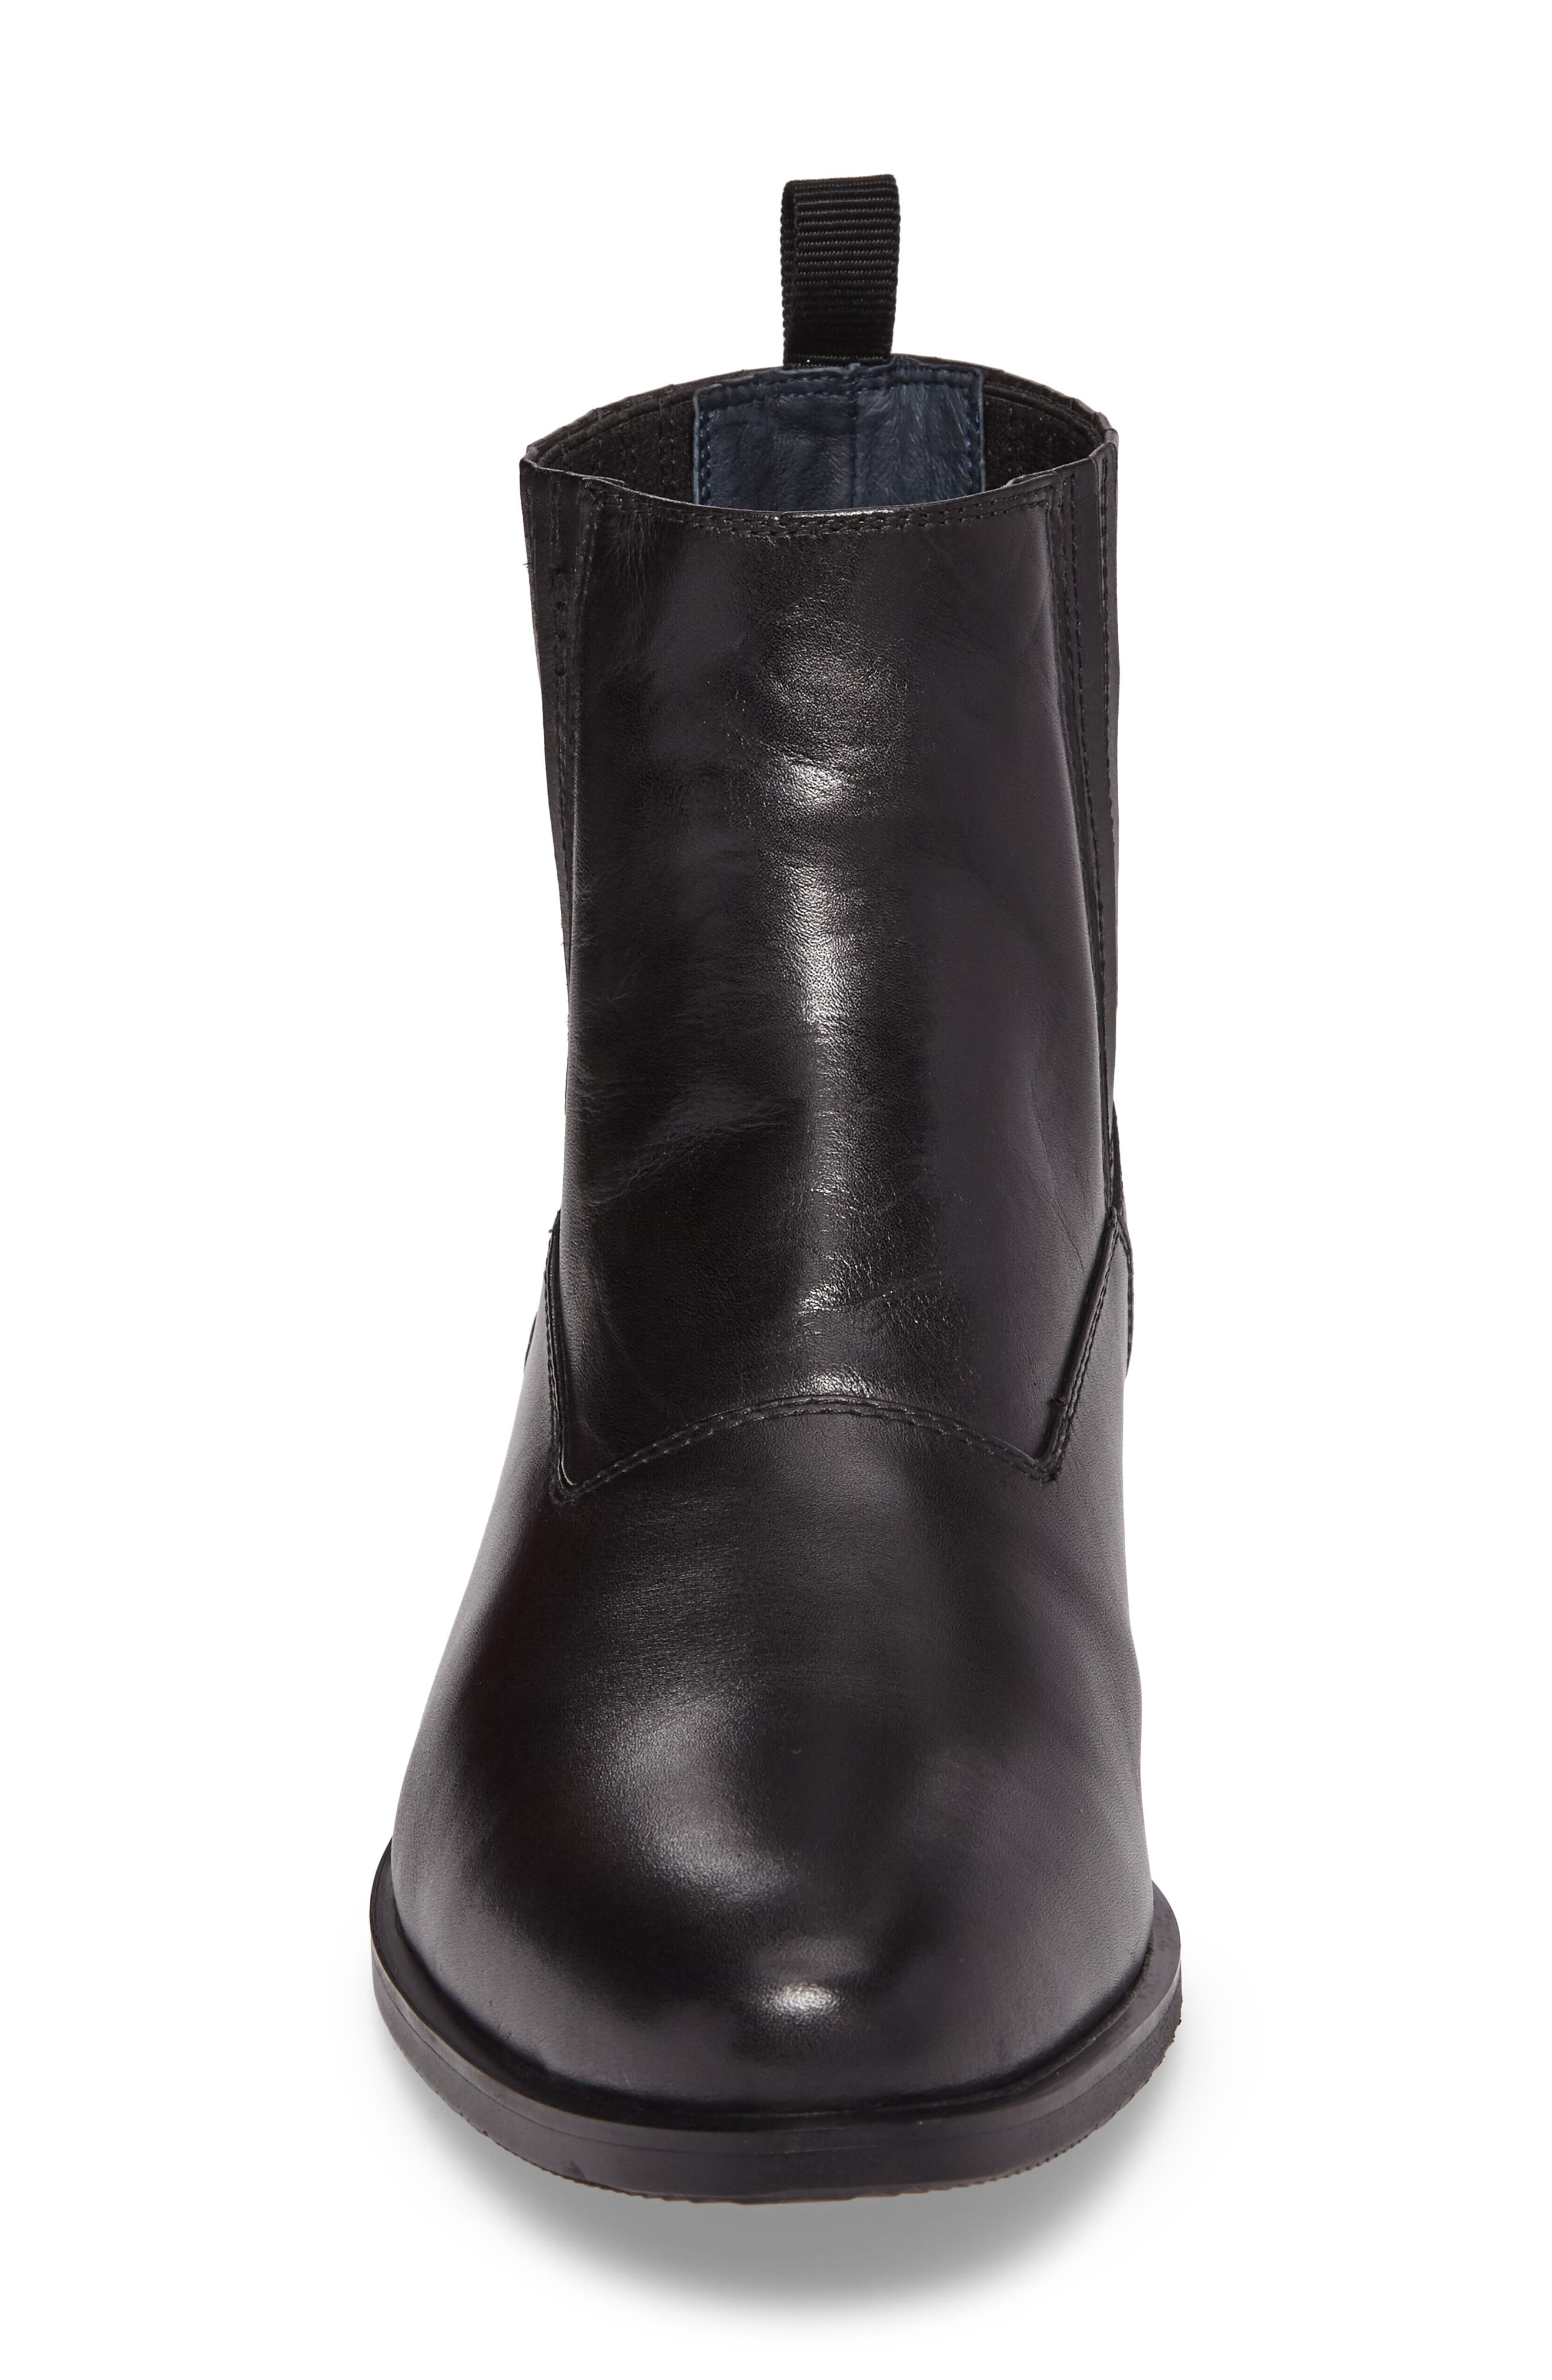 Guardi Zip Boot,                             Alternate thumbnail 4, color,                             Black Leather